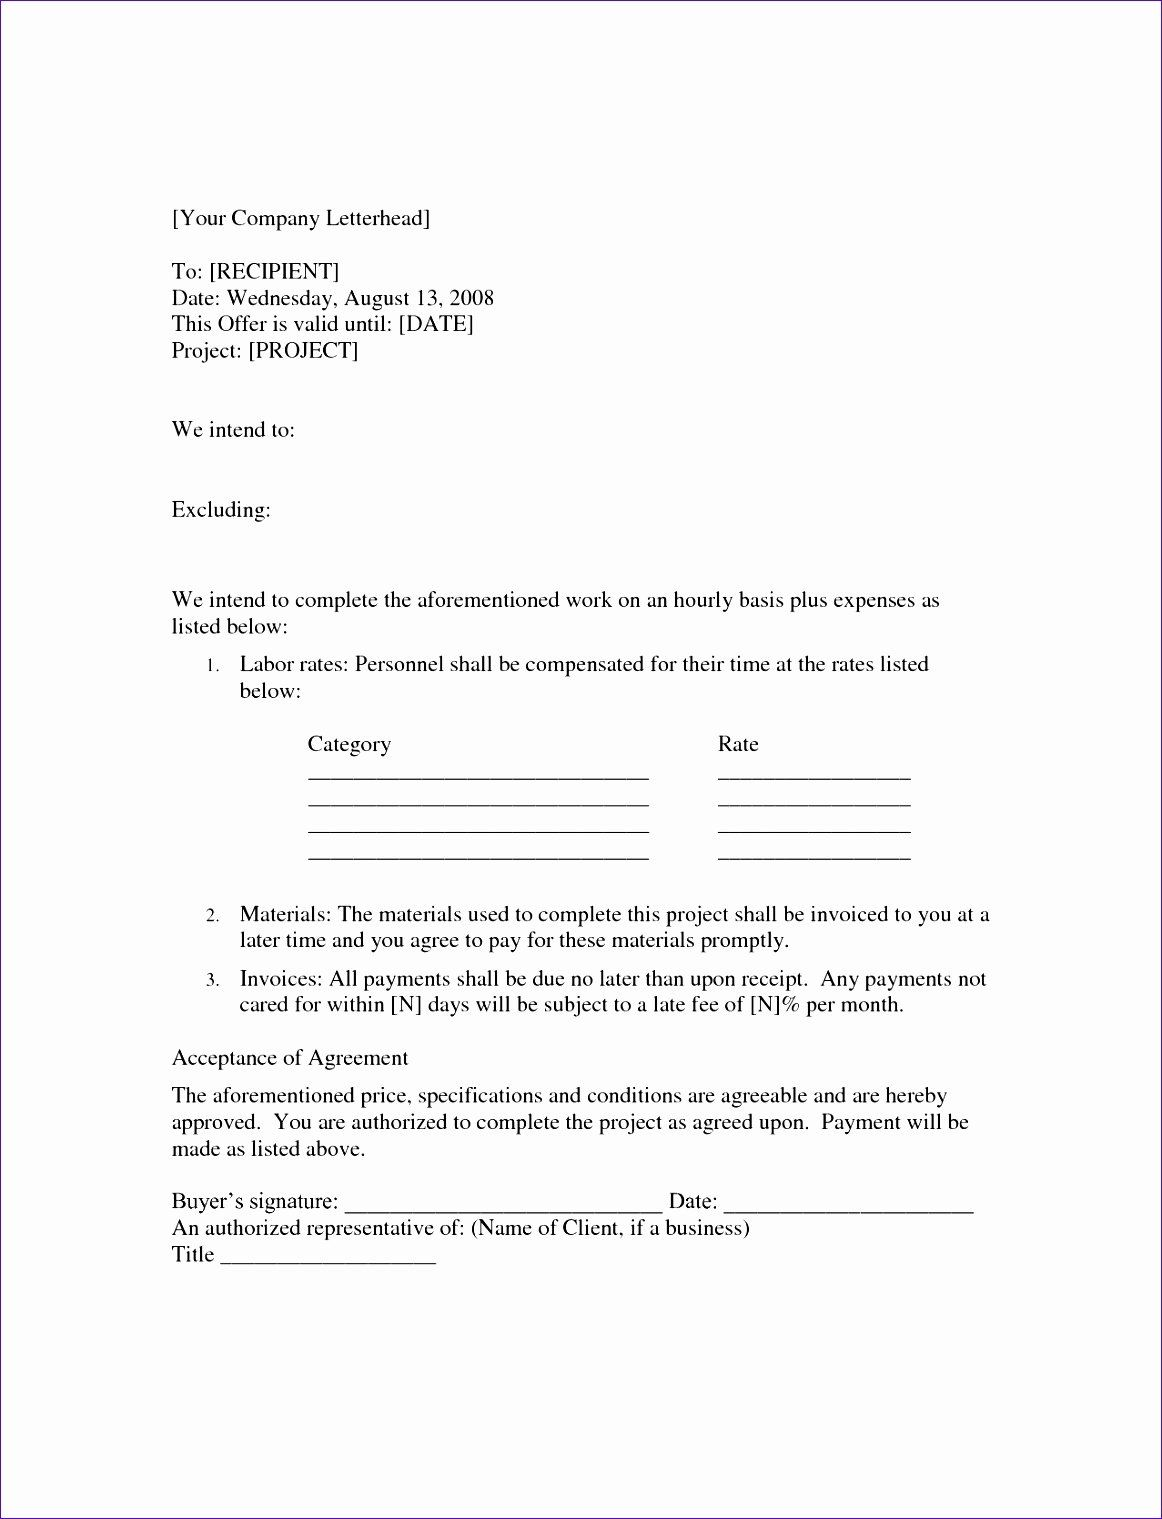 Time And Materials Contract Template Best Of 10 Excel Pay Stub Template Exceltemplates Exceltemplate Contract Template Company Letterhead Templates Free Design